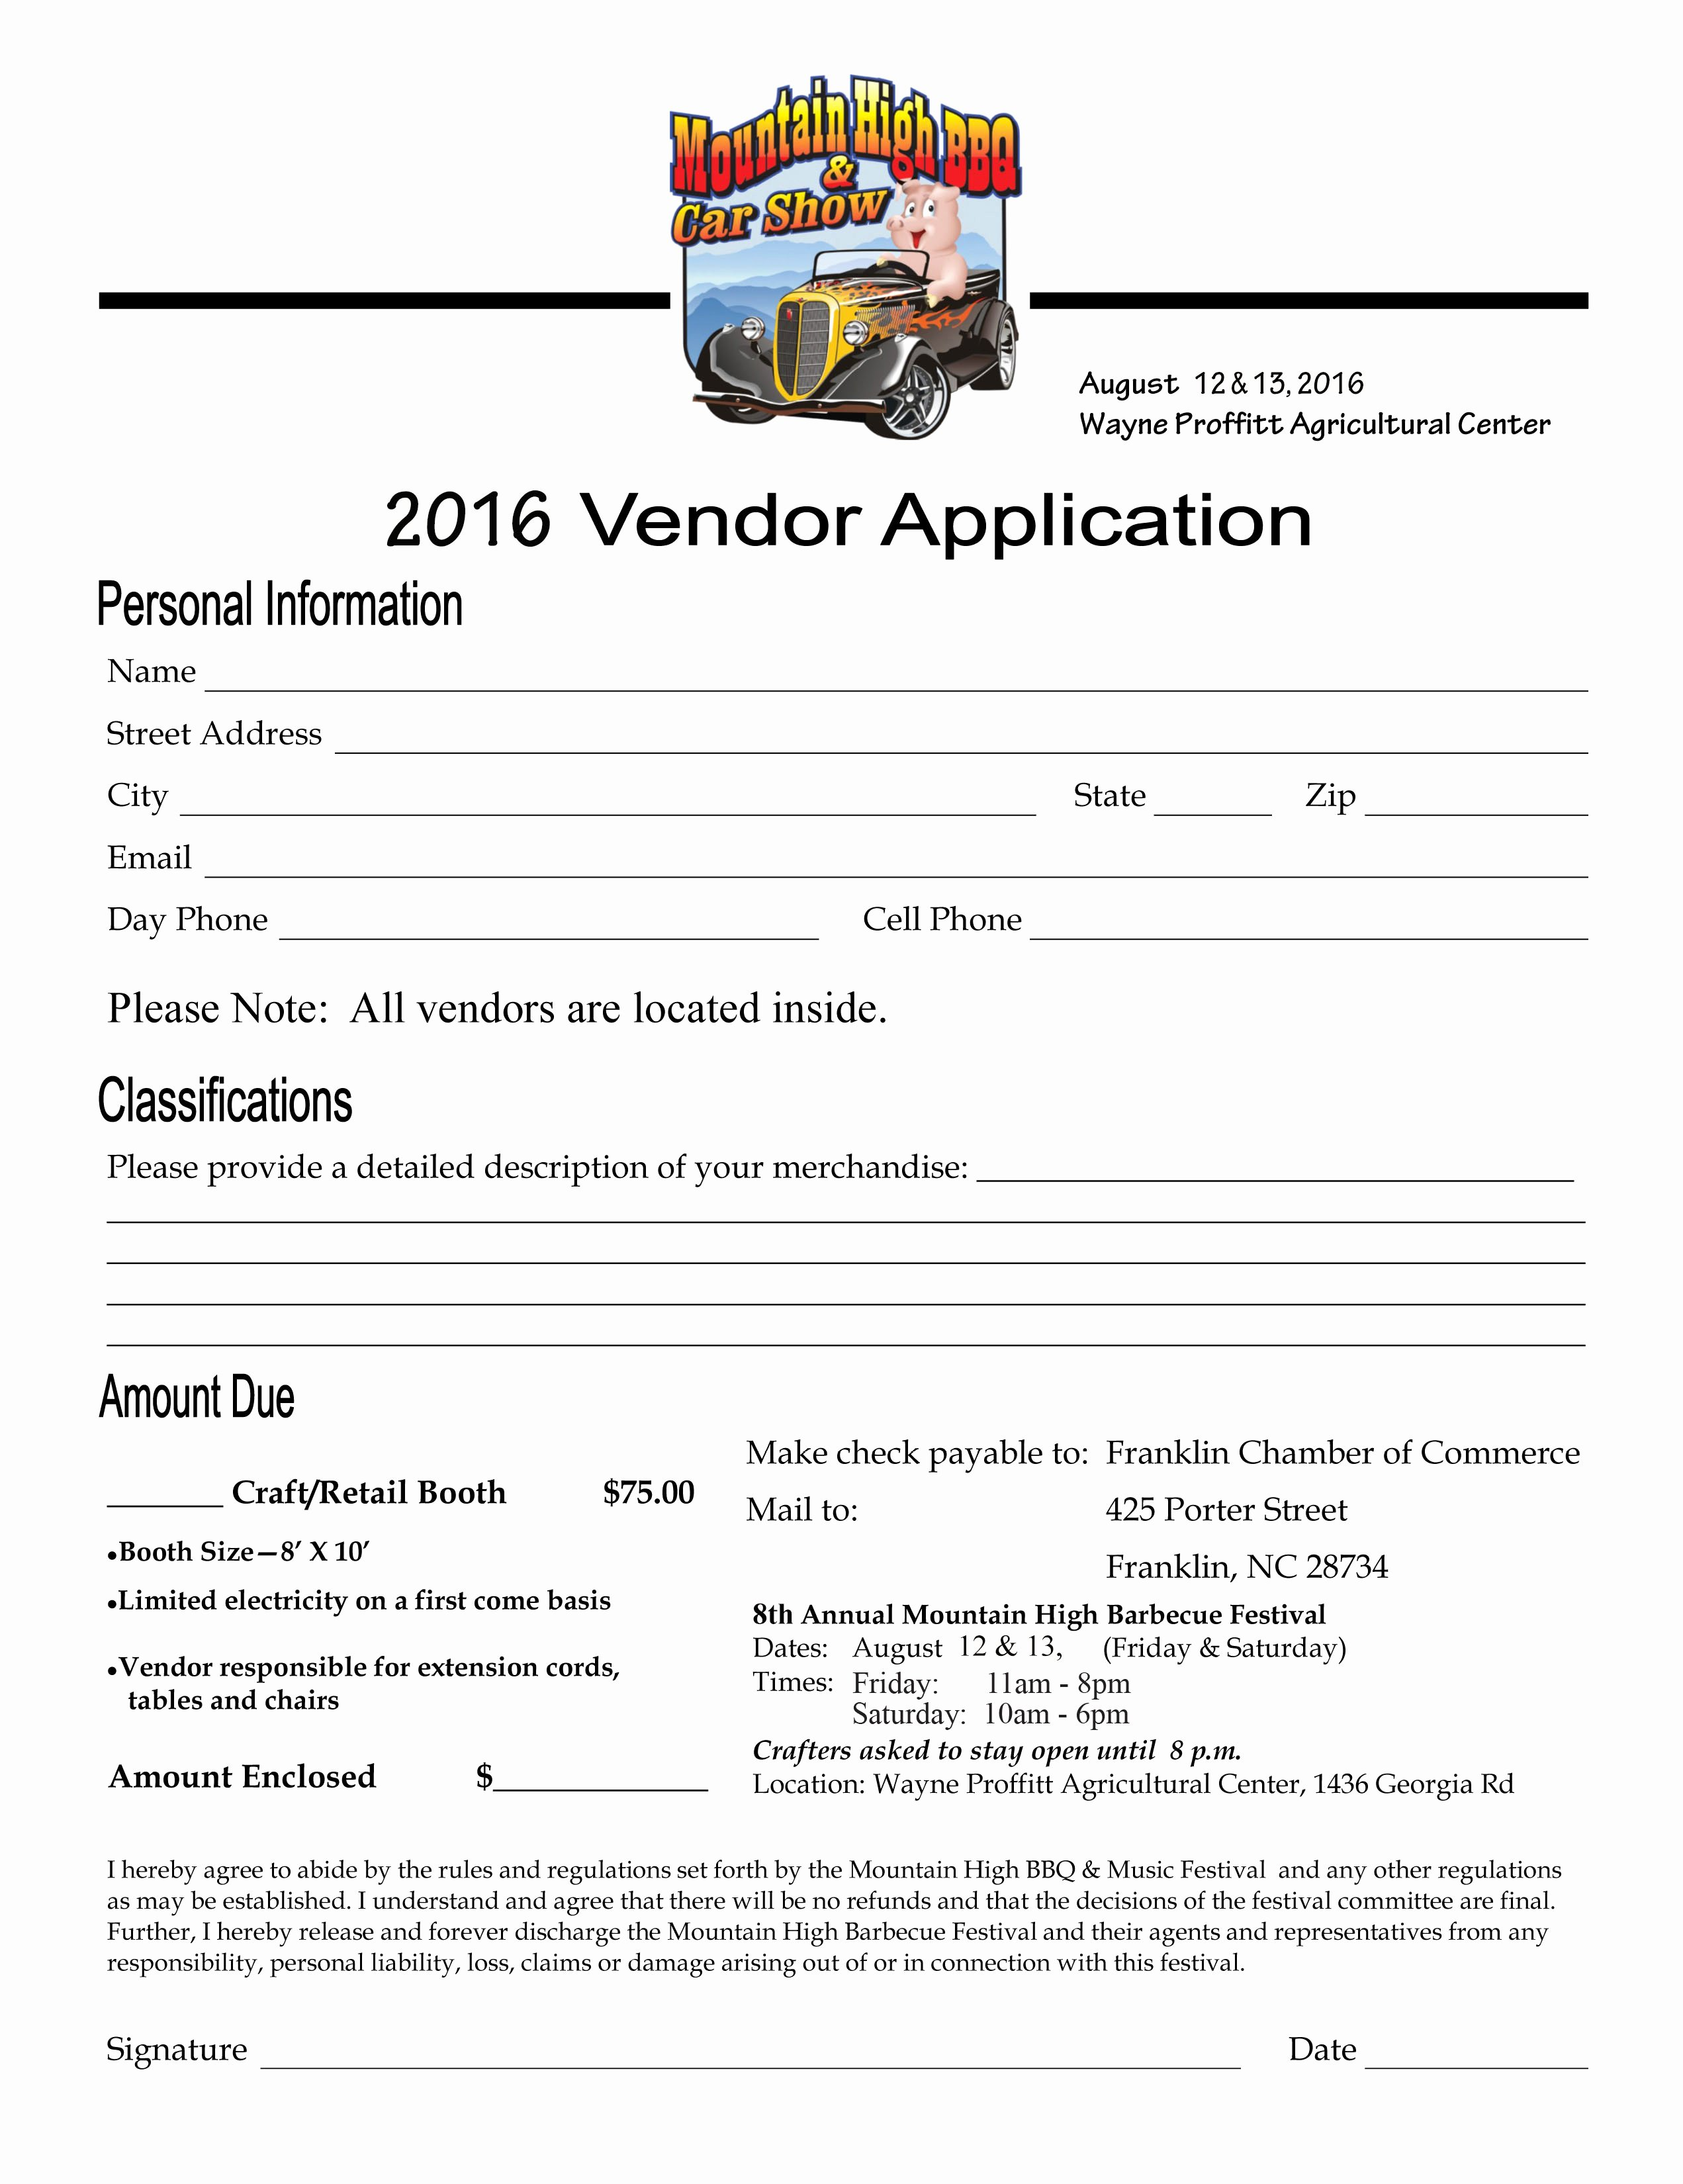 Vendor Application form Template Awesome Vendor forms Mountain High Bbq and Music Festival In